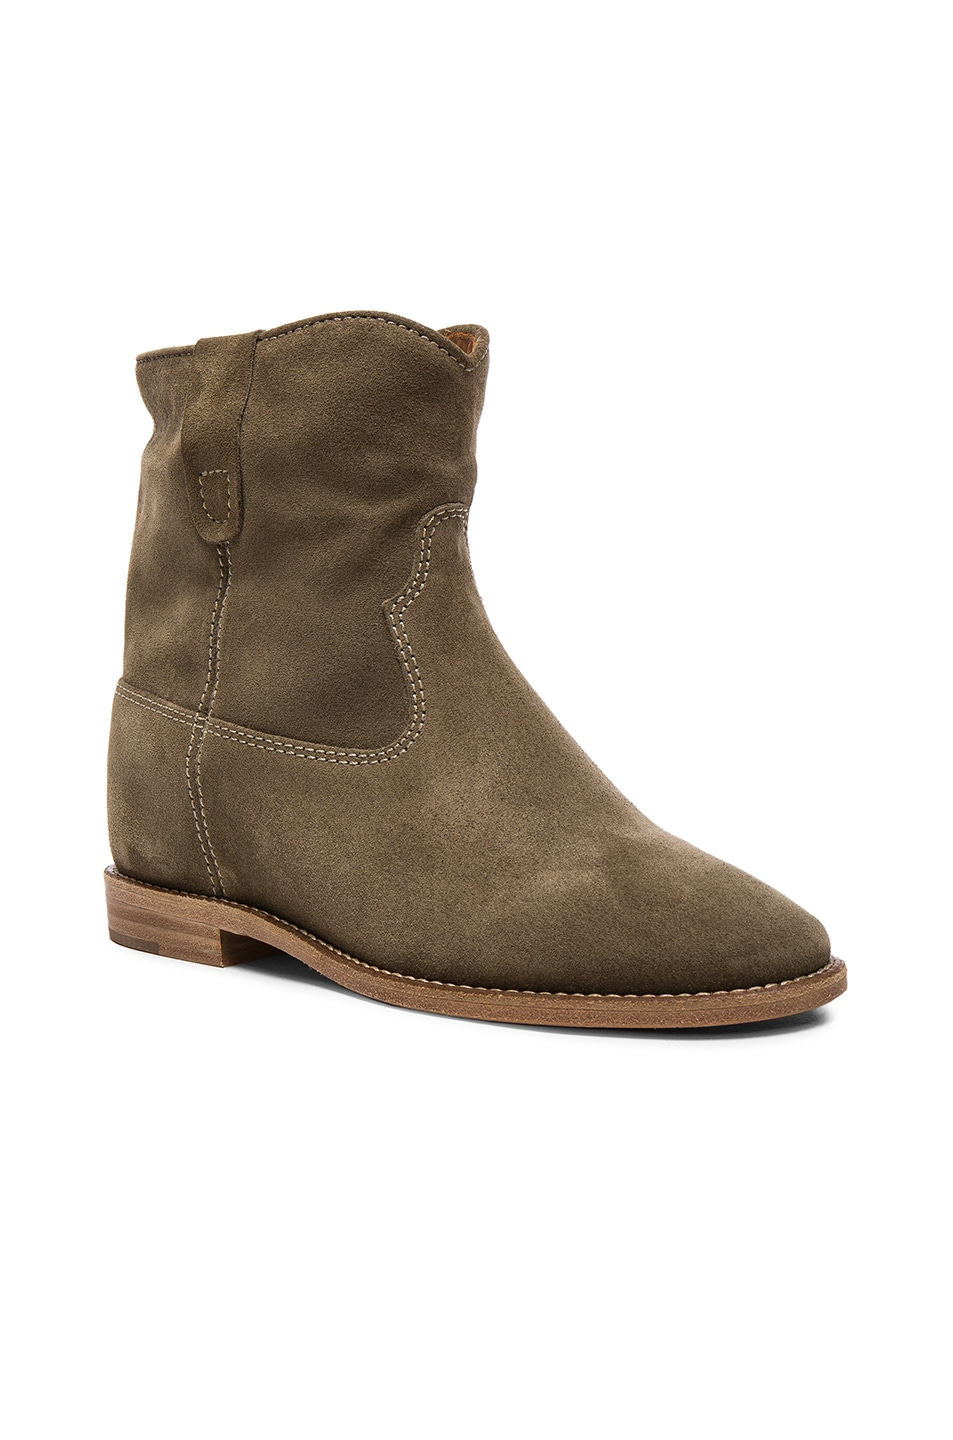 Image 2 of Isabel Marant Etoile Crisi Velvet Booties in Taupe